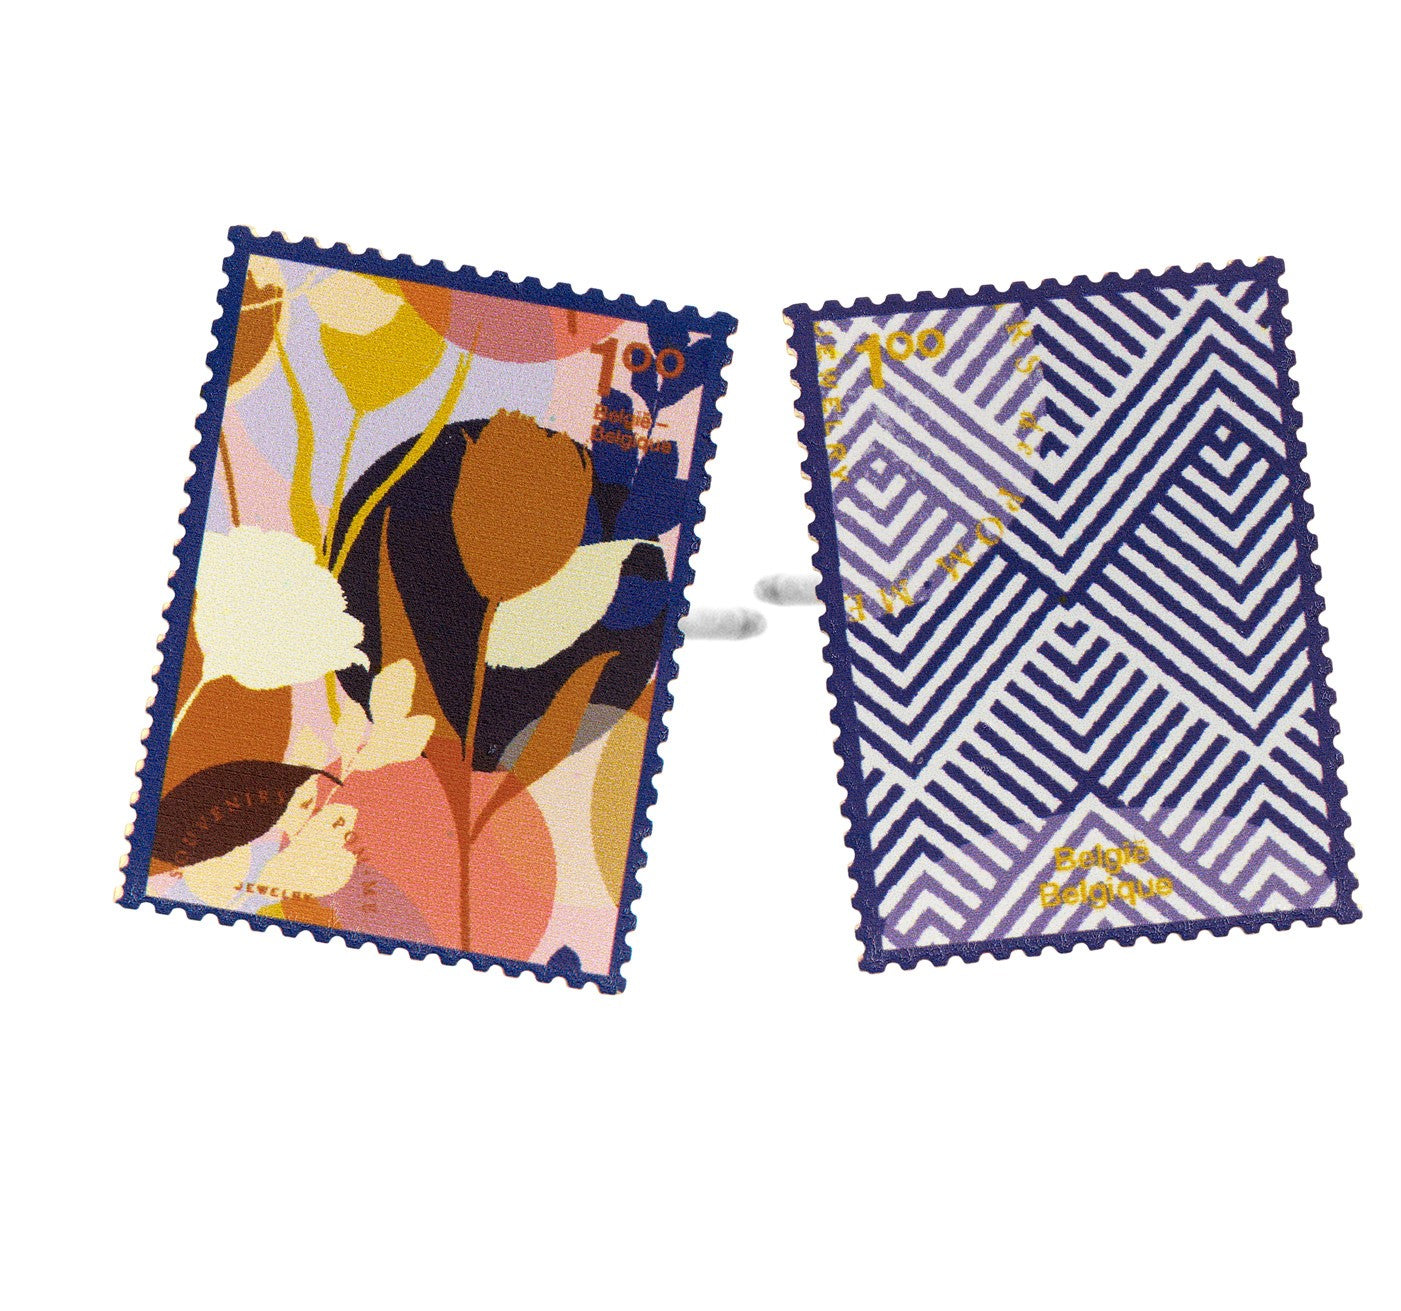 PRE-ORDER Memory stamp navy mix earrings - Souvenirs de Pomme